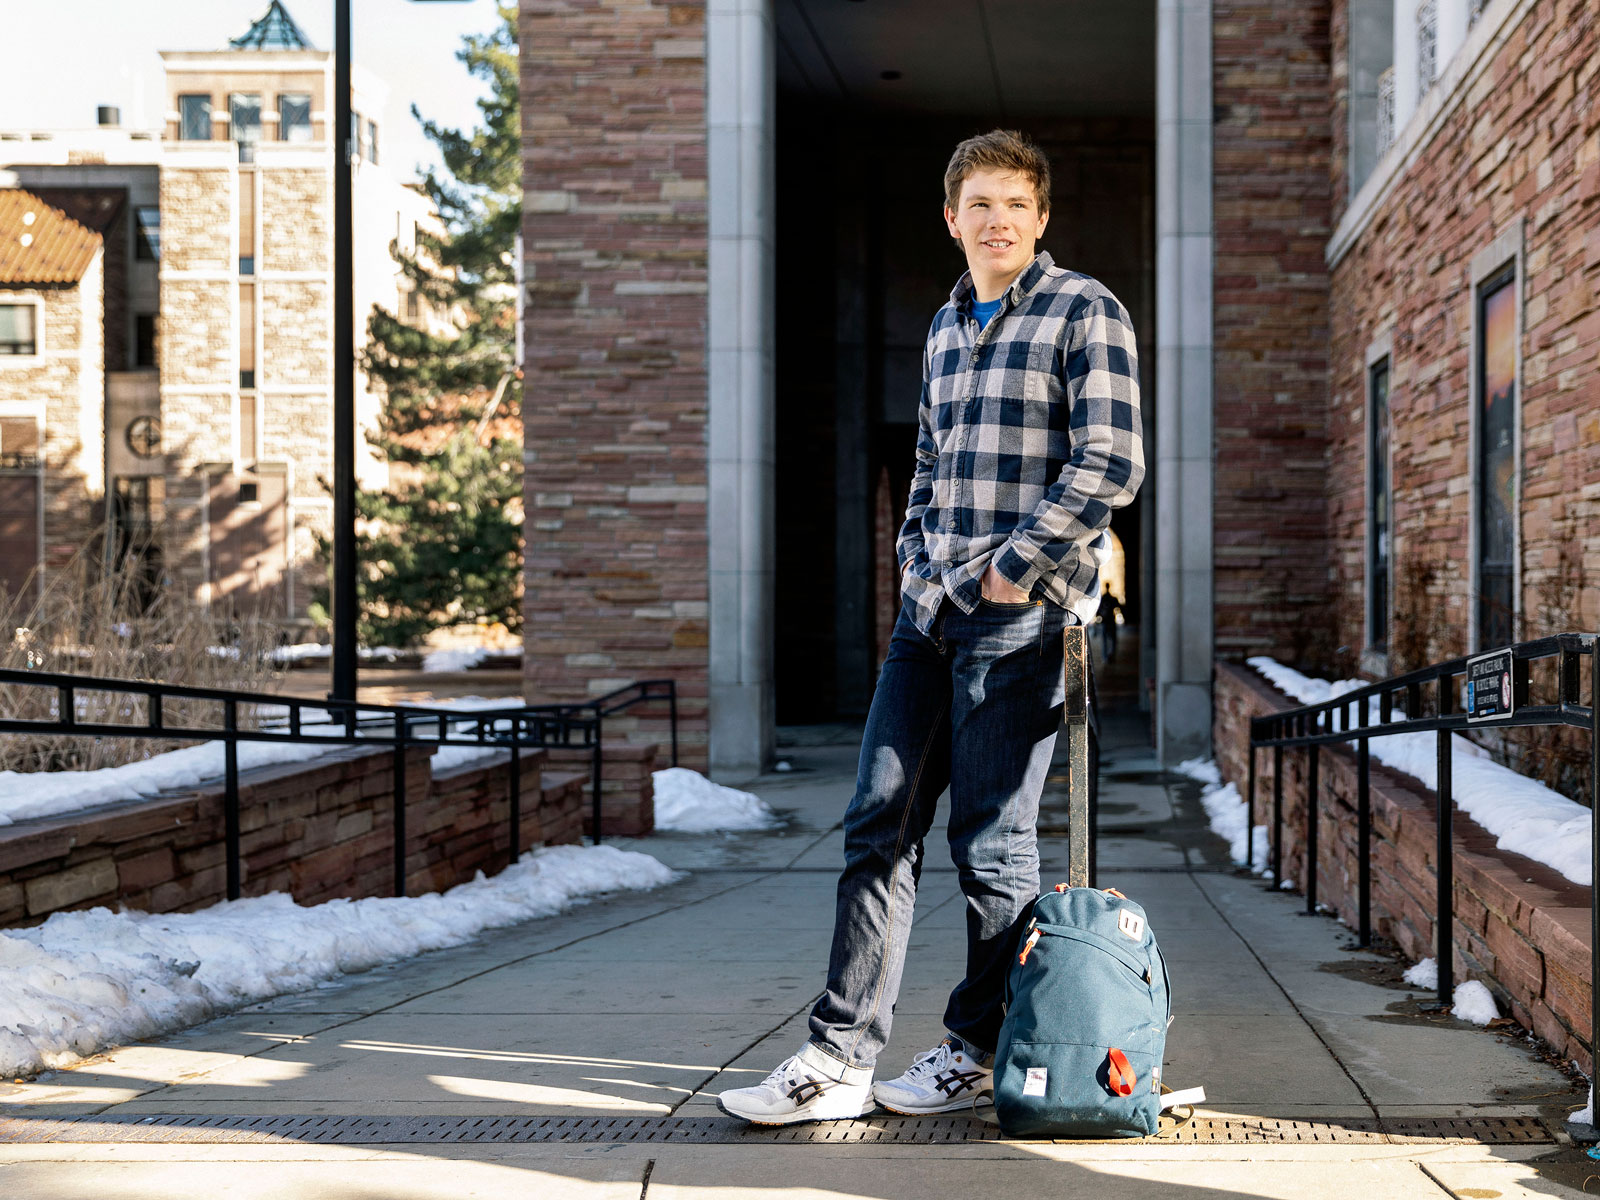 College student standing with backpack on campus